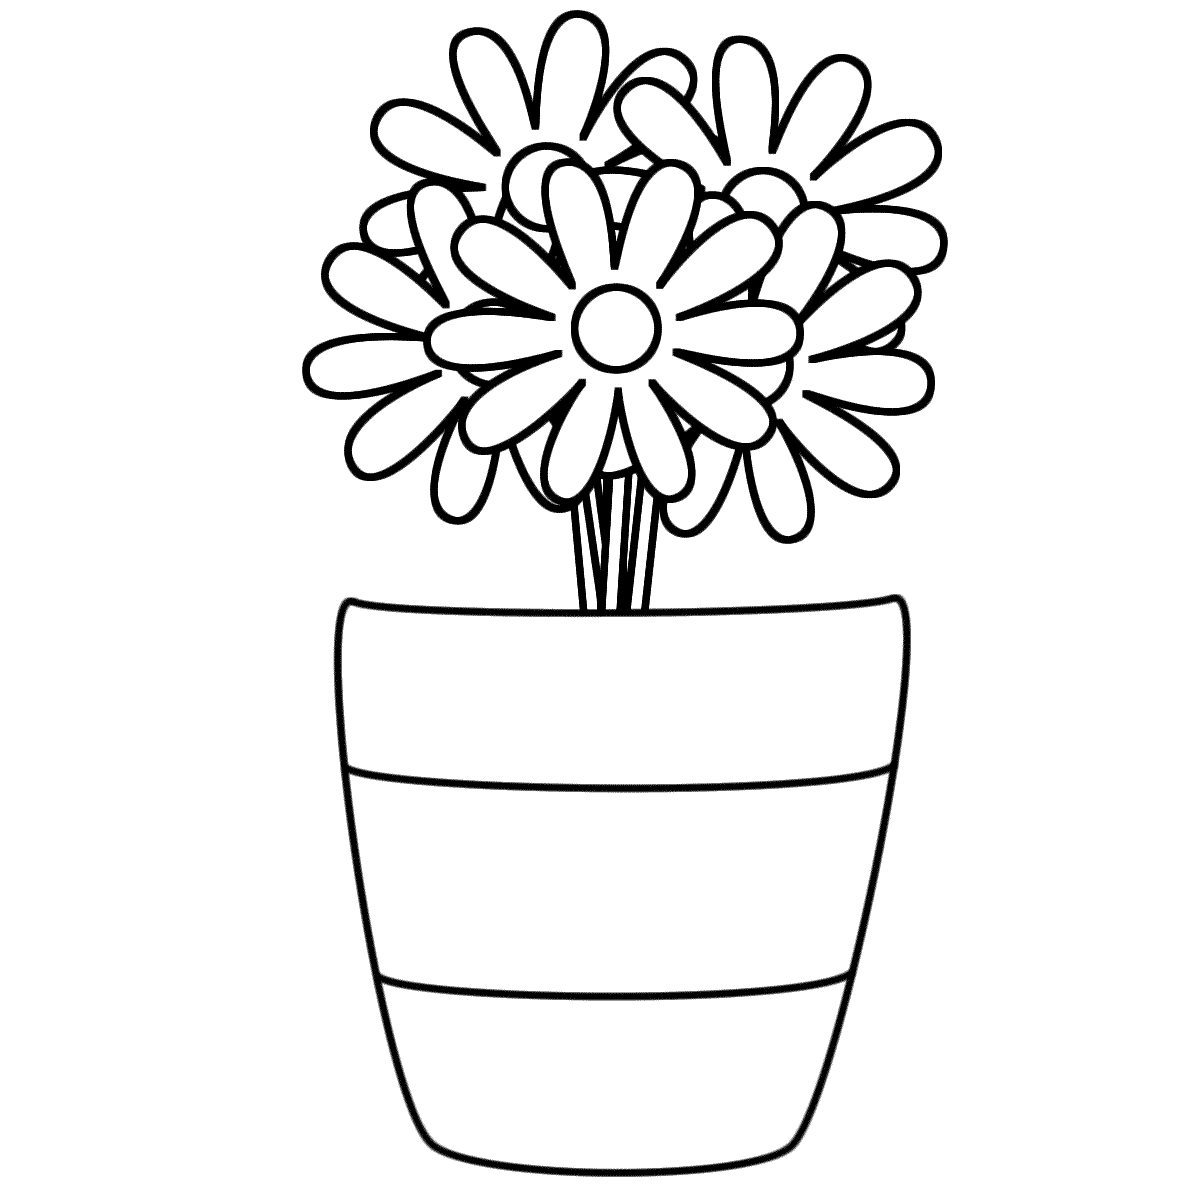 coloring flower clipart black and white black and white flower clipart clipart best and white clipart black coloring flower